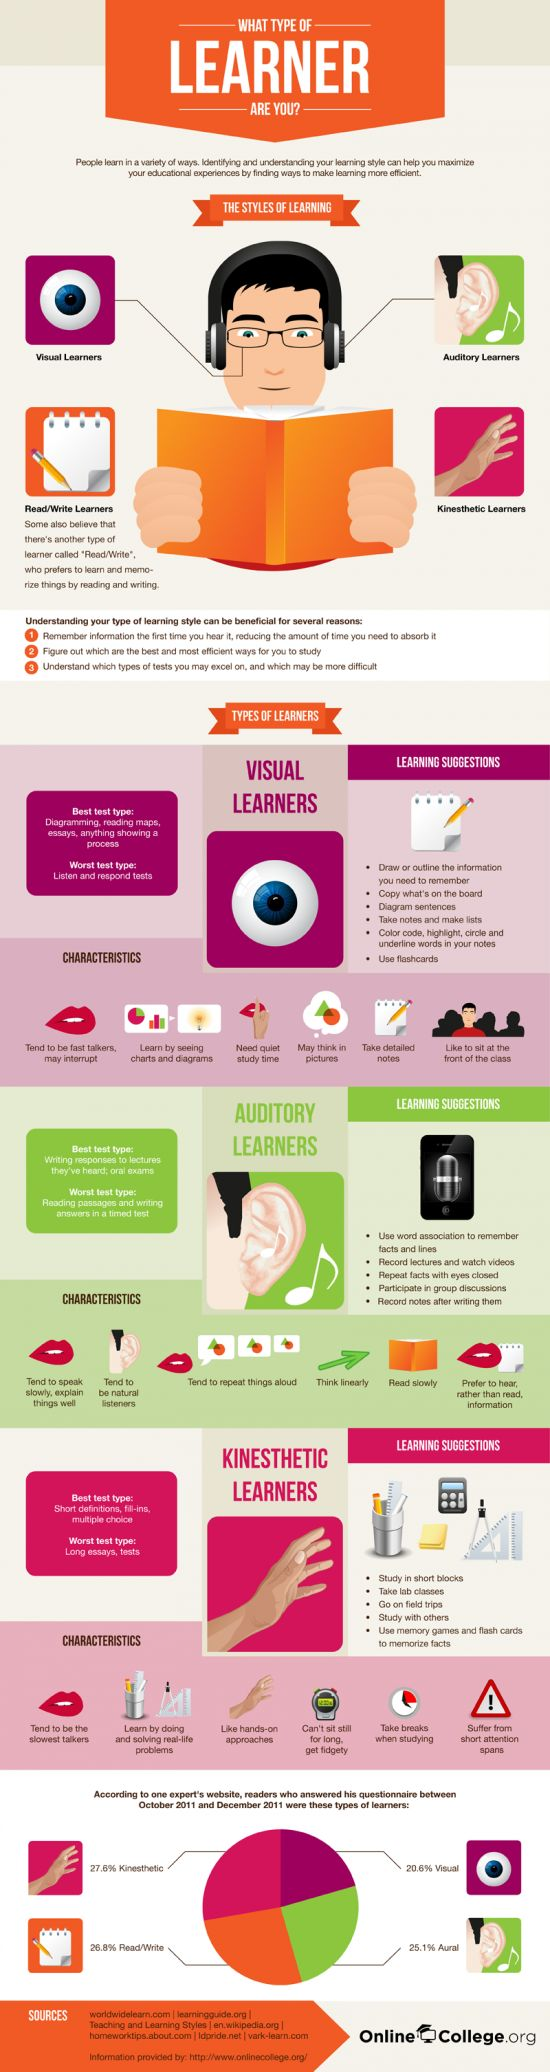 Learning Styles Survey                                                       …